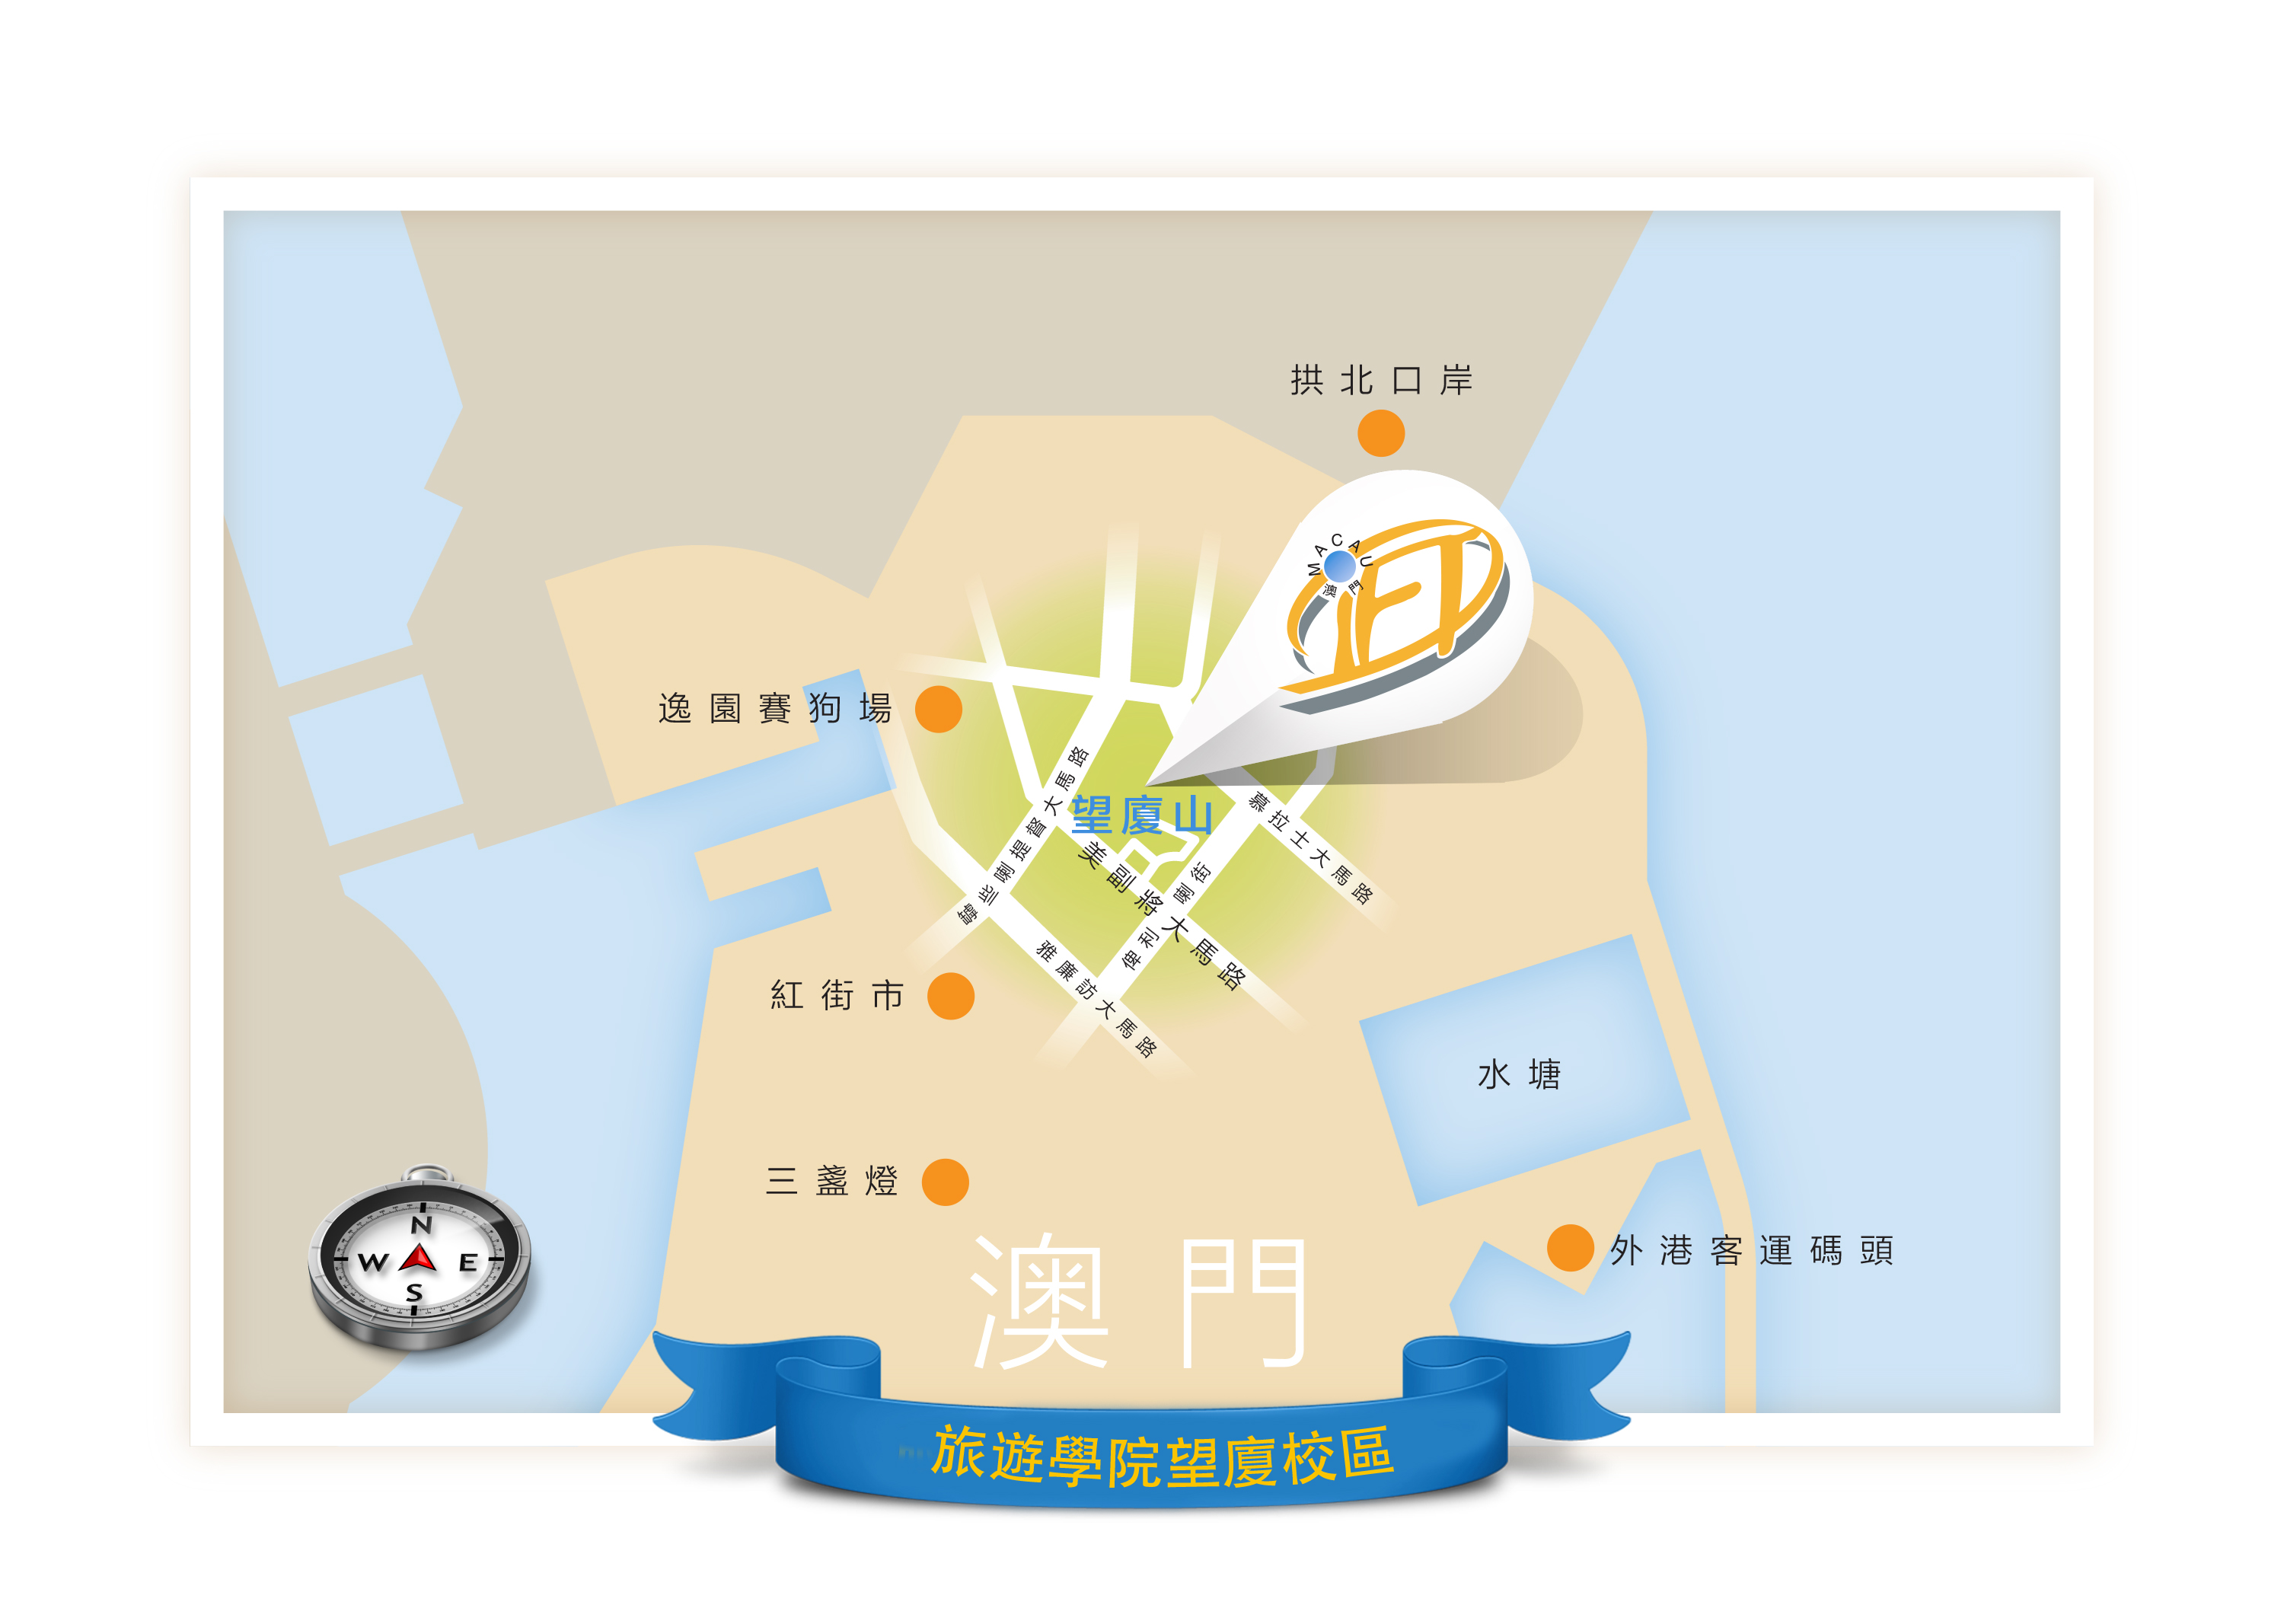 1c) Map to indicate where Macau IFT locates copy